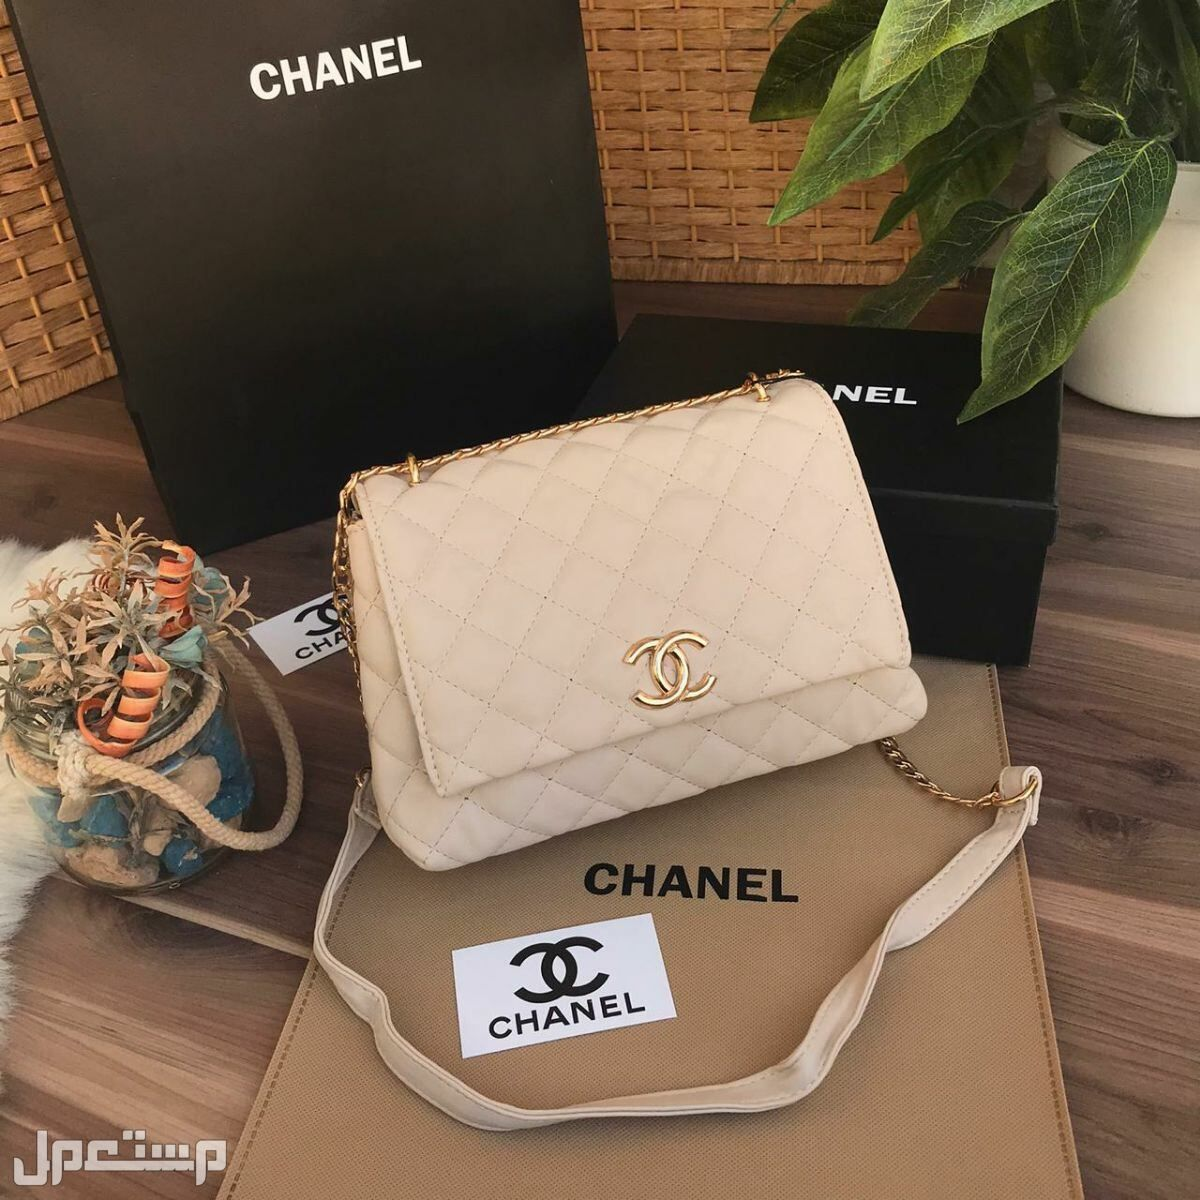 Pin By Flana7 On ه In 2021 Shoulder Bag Chanel Classic Louis Vuitton Damier